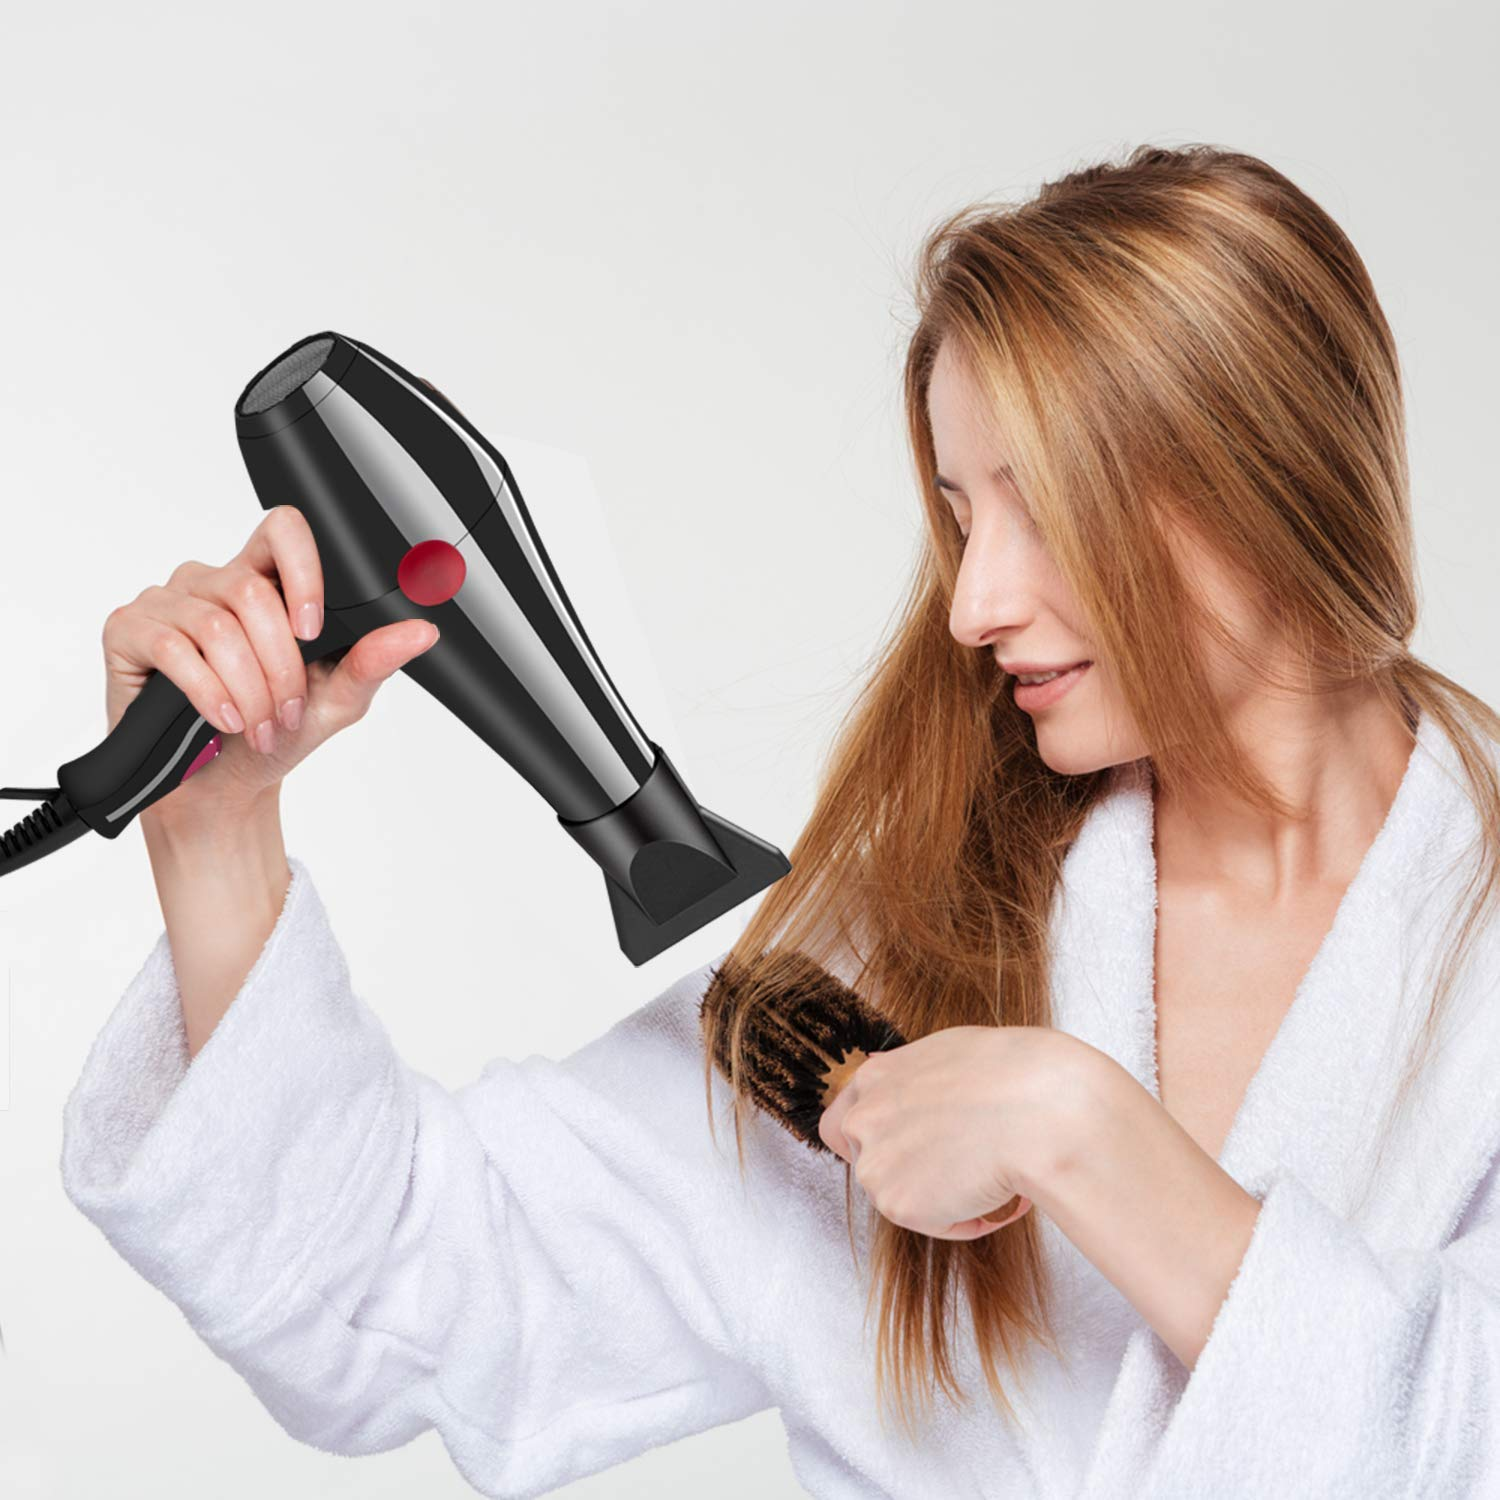 Top 10 Best Hair Dryer in India 2021: Buyer's guide and reviews